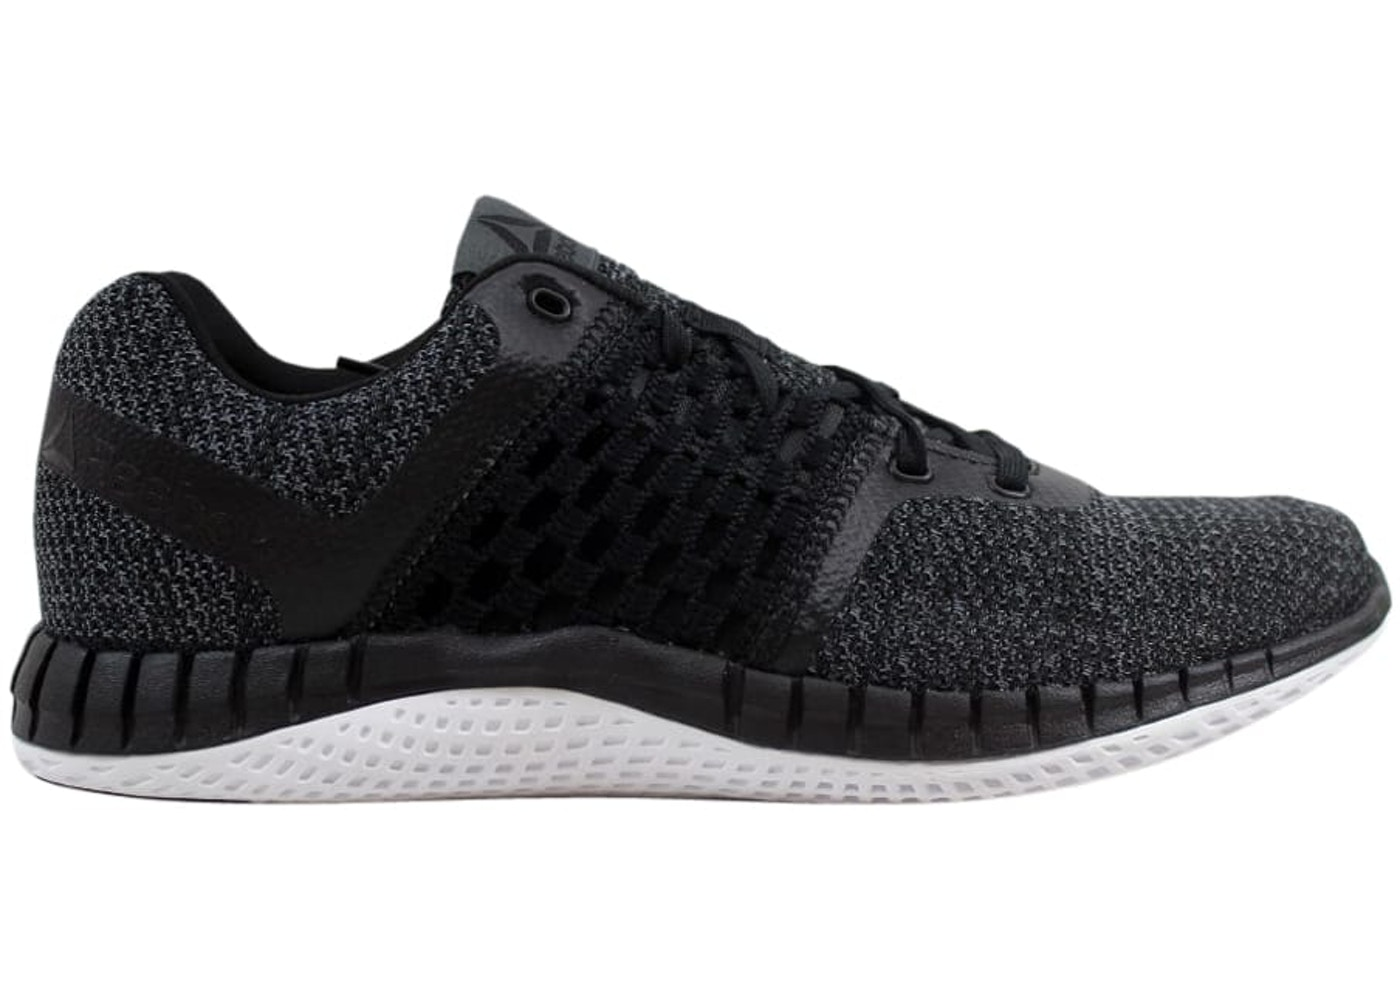 super popular 4756c 7c55f Reebok Print Run Ultraknit Black - BS7360